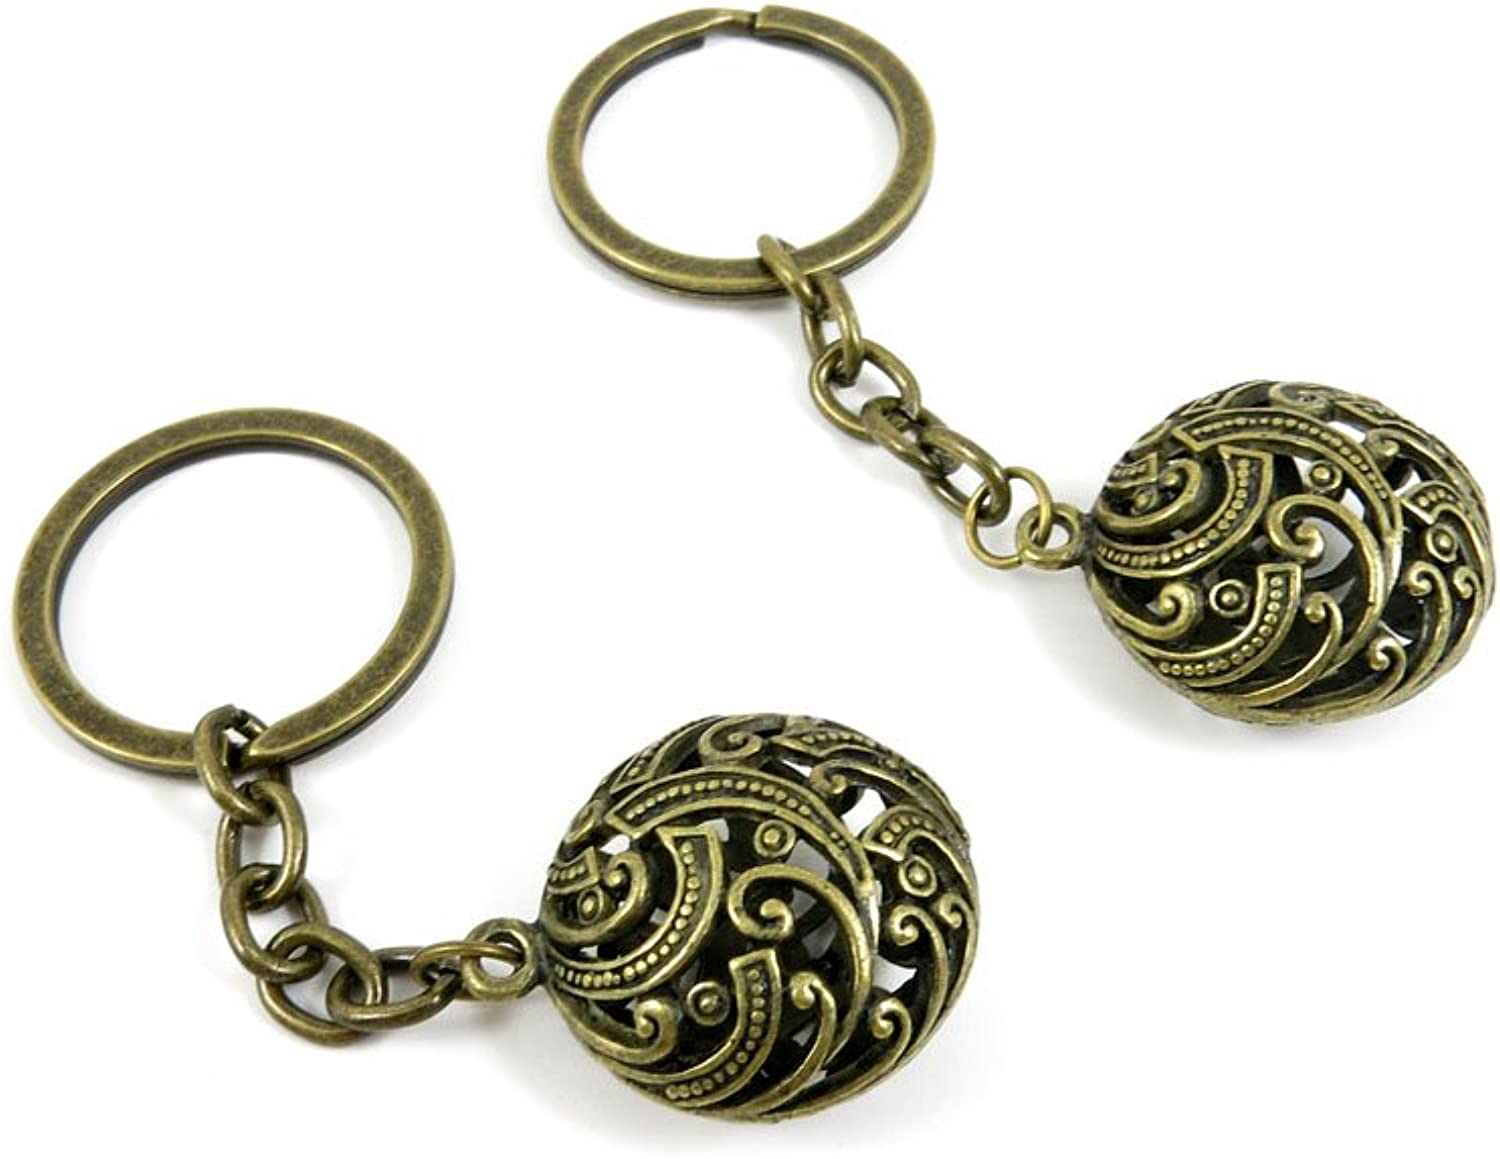 50 Pieces Fashion Jewelry Keyring Keychain Door Car Key Tag Ring Chain Supplier Supply Wholesale Bulk Lots F1YQ5 Hollow Ball